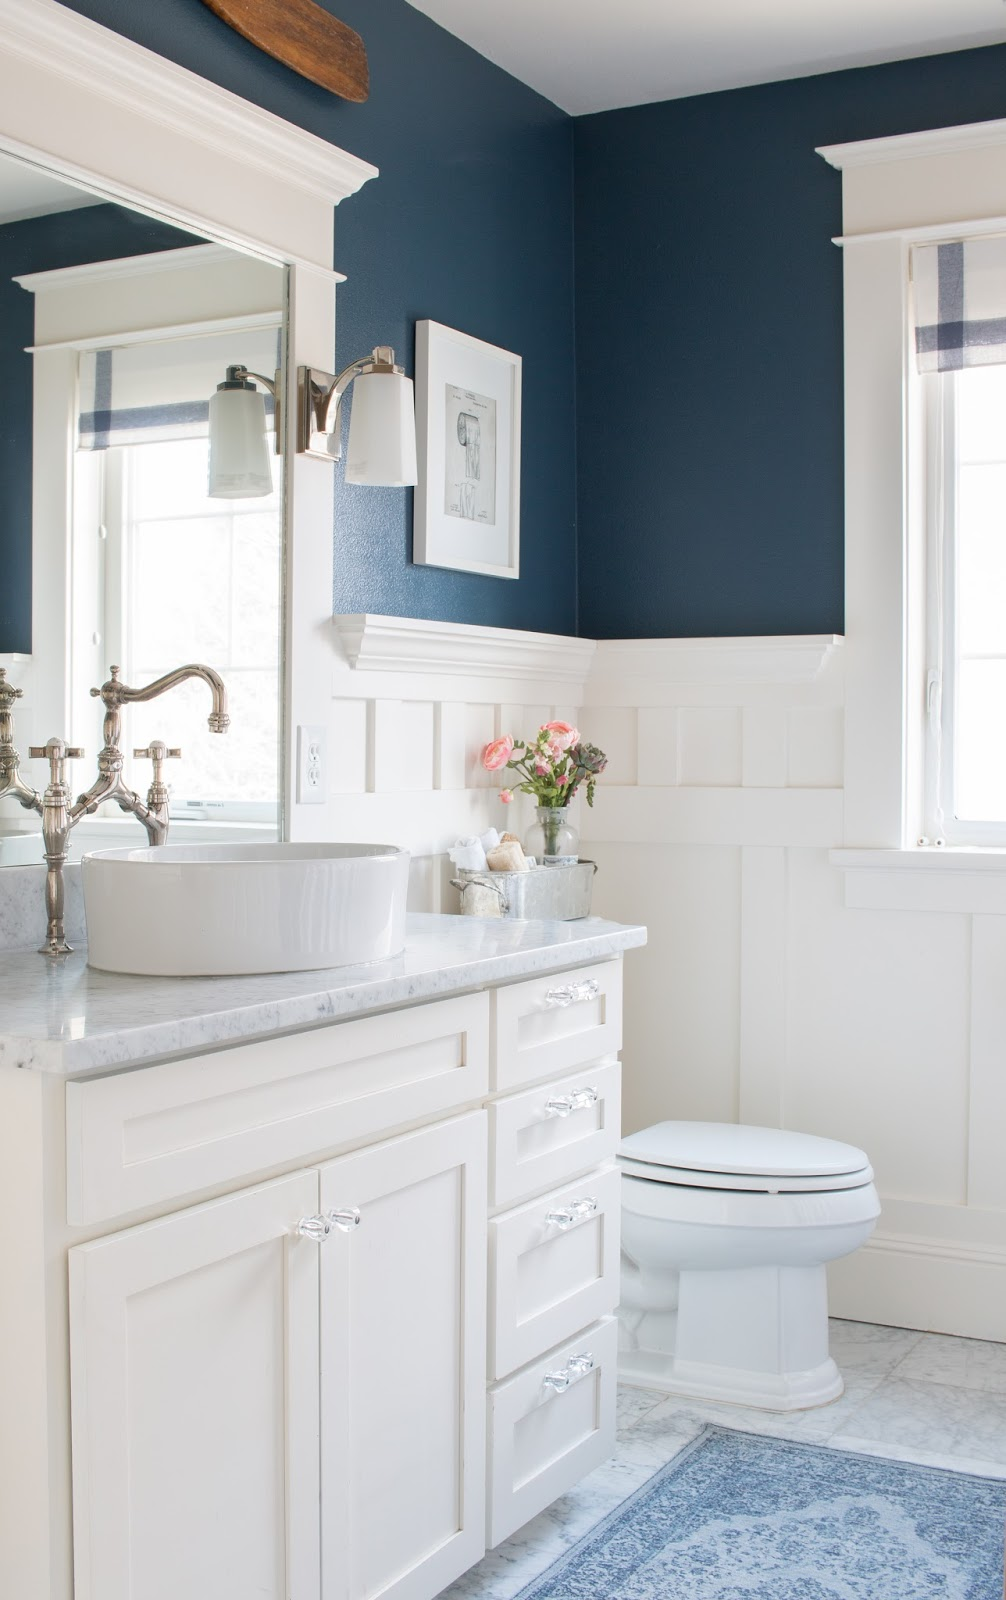 navy blue walls with a white vanity with marble counter and floors